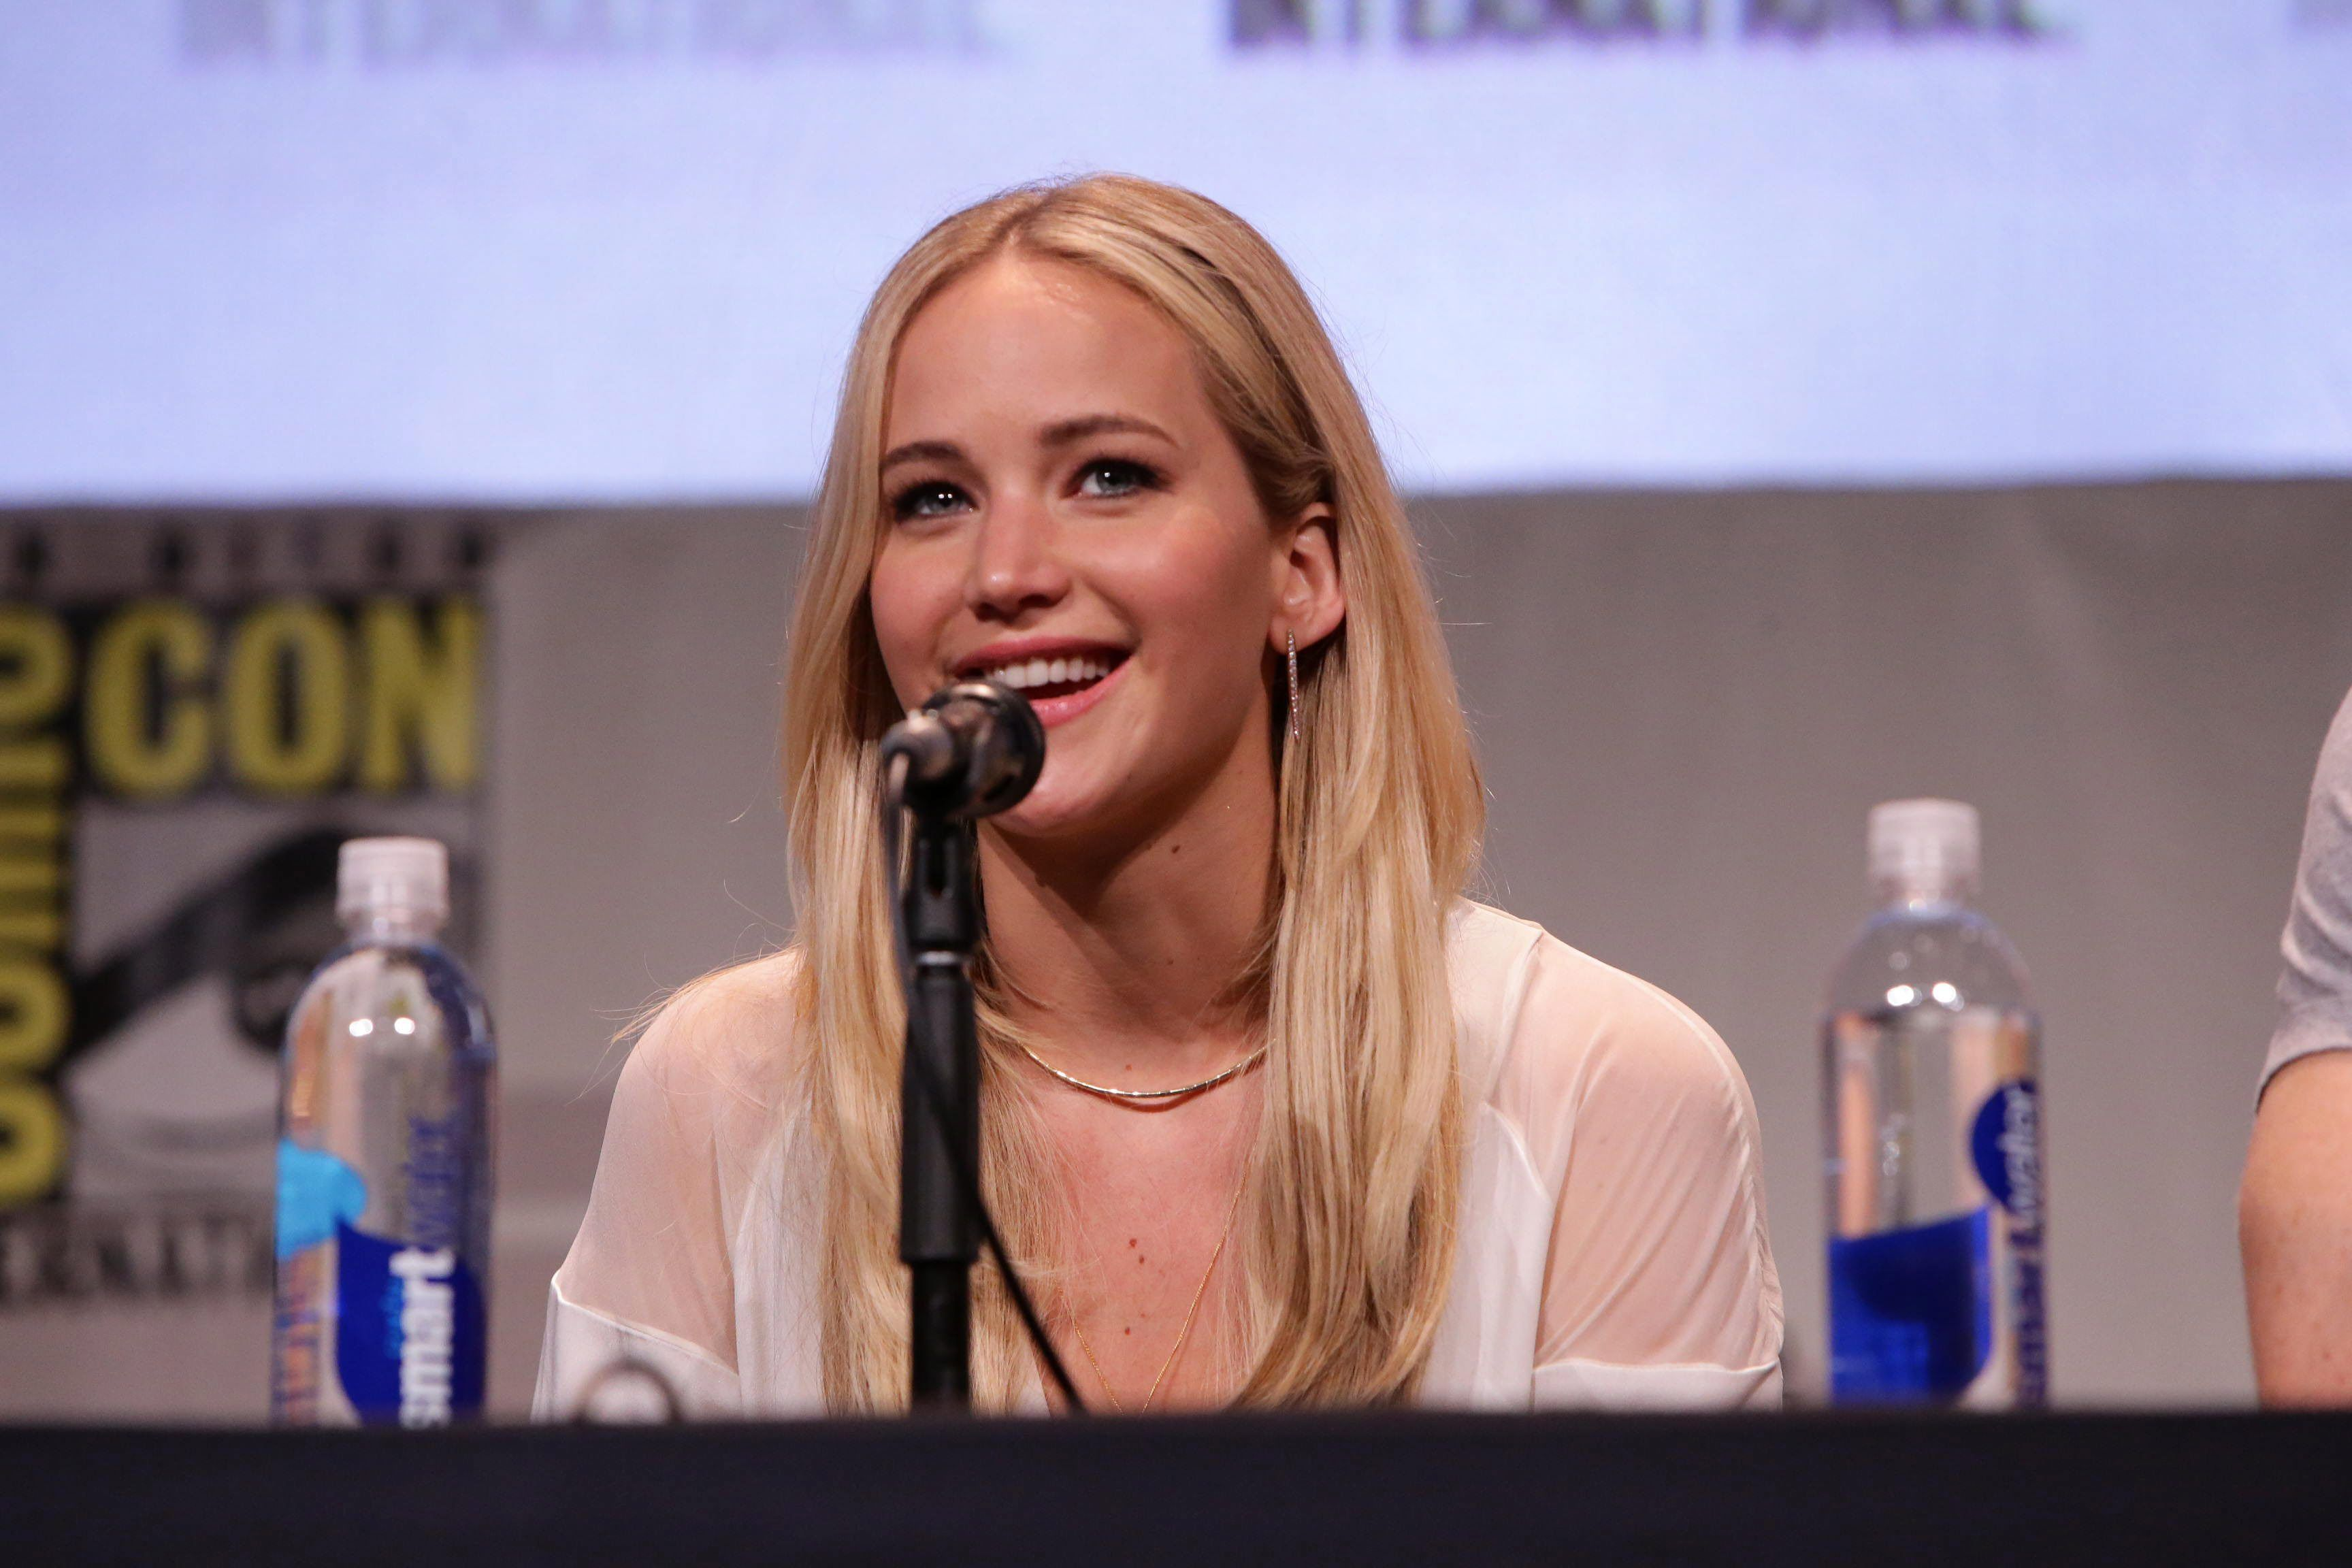 12 Reasons We Want Jennifer Lawrence To Be Our BFF - Fame10